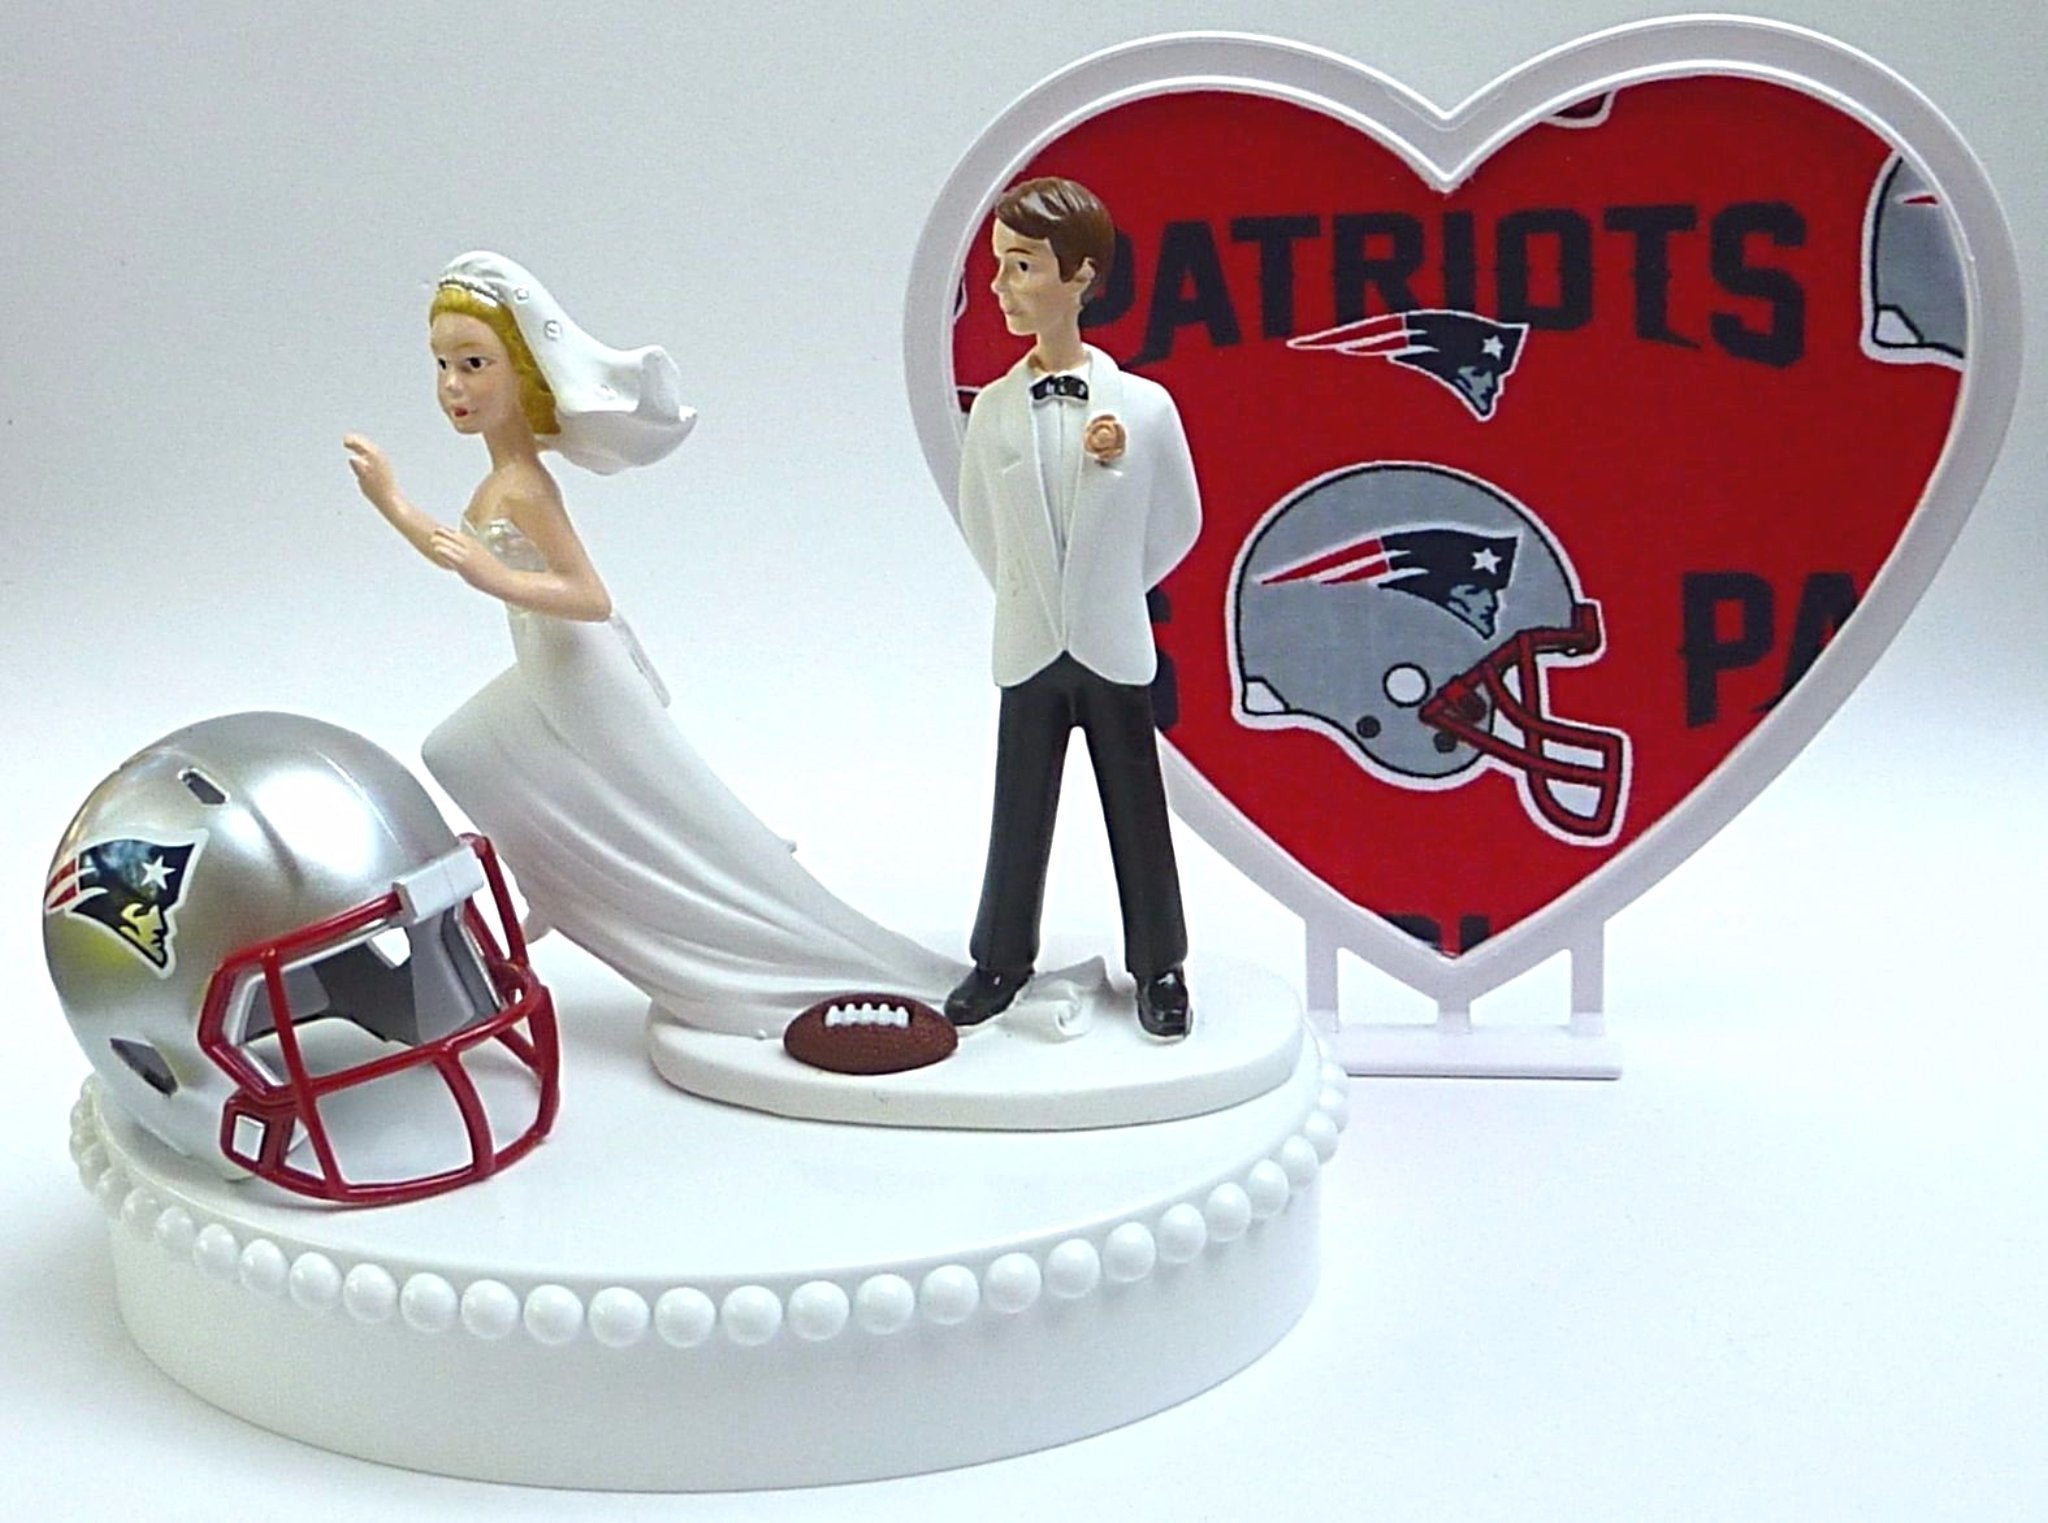 NE Patriots wedding cake topper NFL football Fun Wedding Things New England sports fans bride runaway groom humorous reception gift party idea